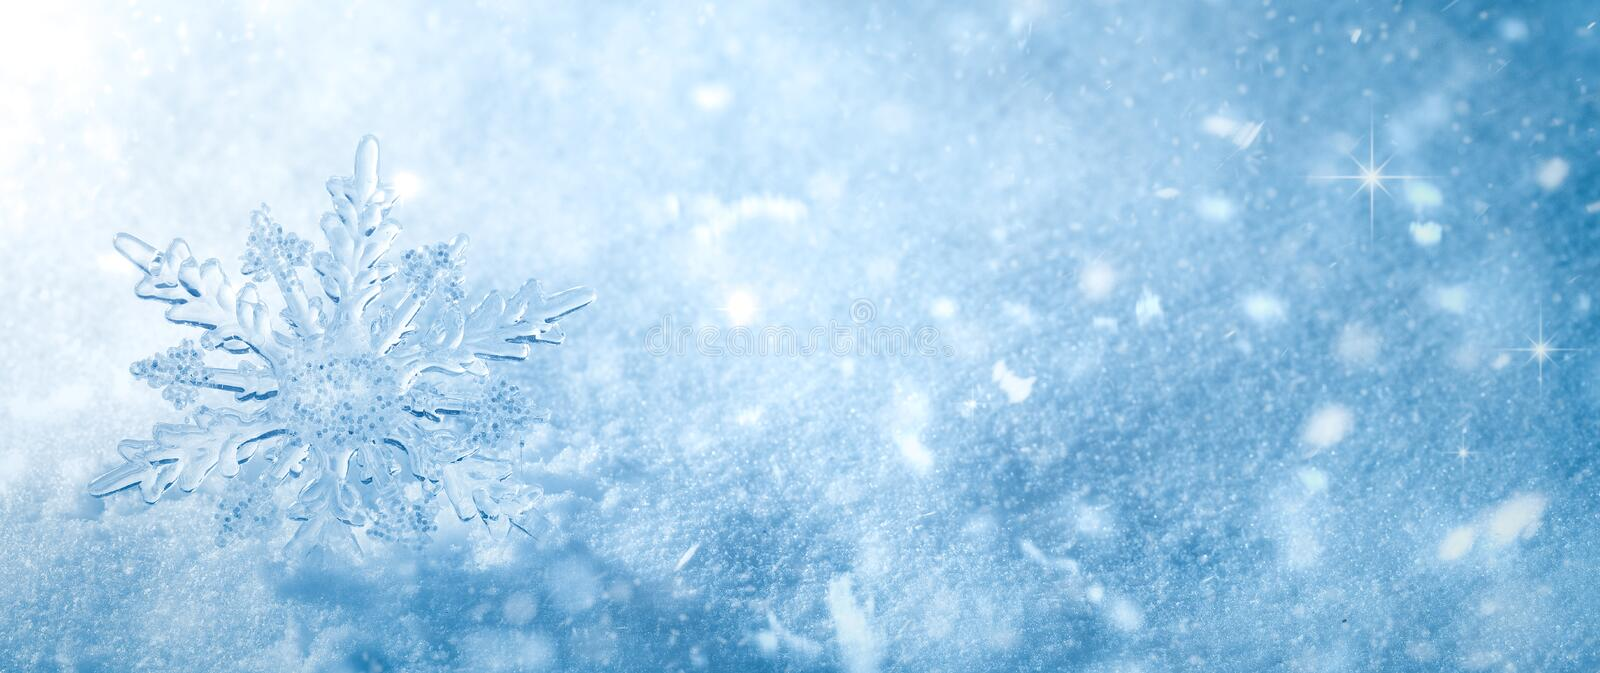 Neige Background images libres de droits